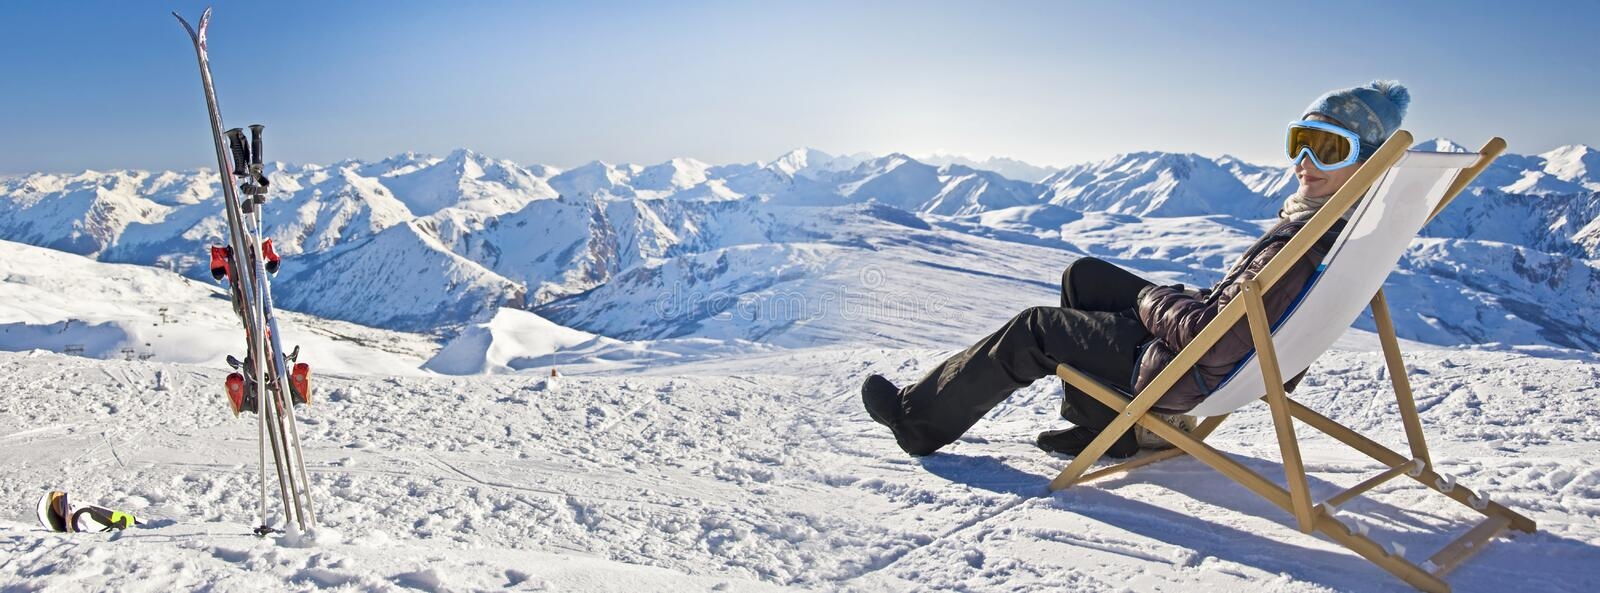 Panorama of a girl sunbathing in a deckchair near a snowy ski slope. Panorama of a girl sunbathing in a deckchair near a ski slope royalty free stock images